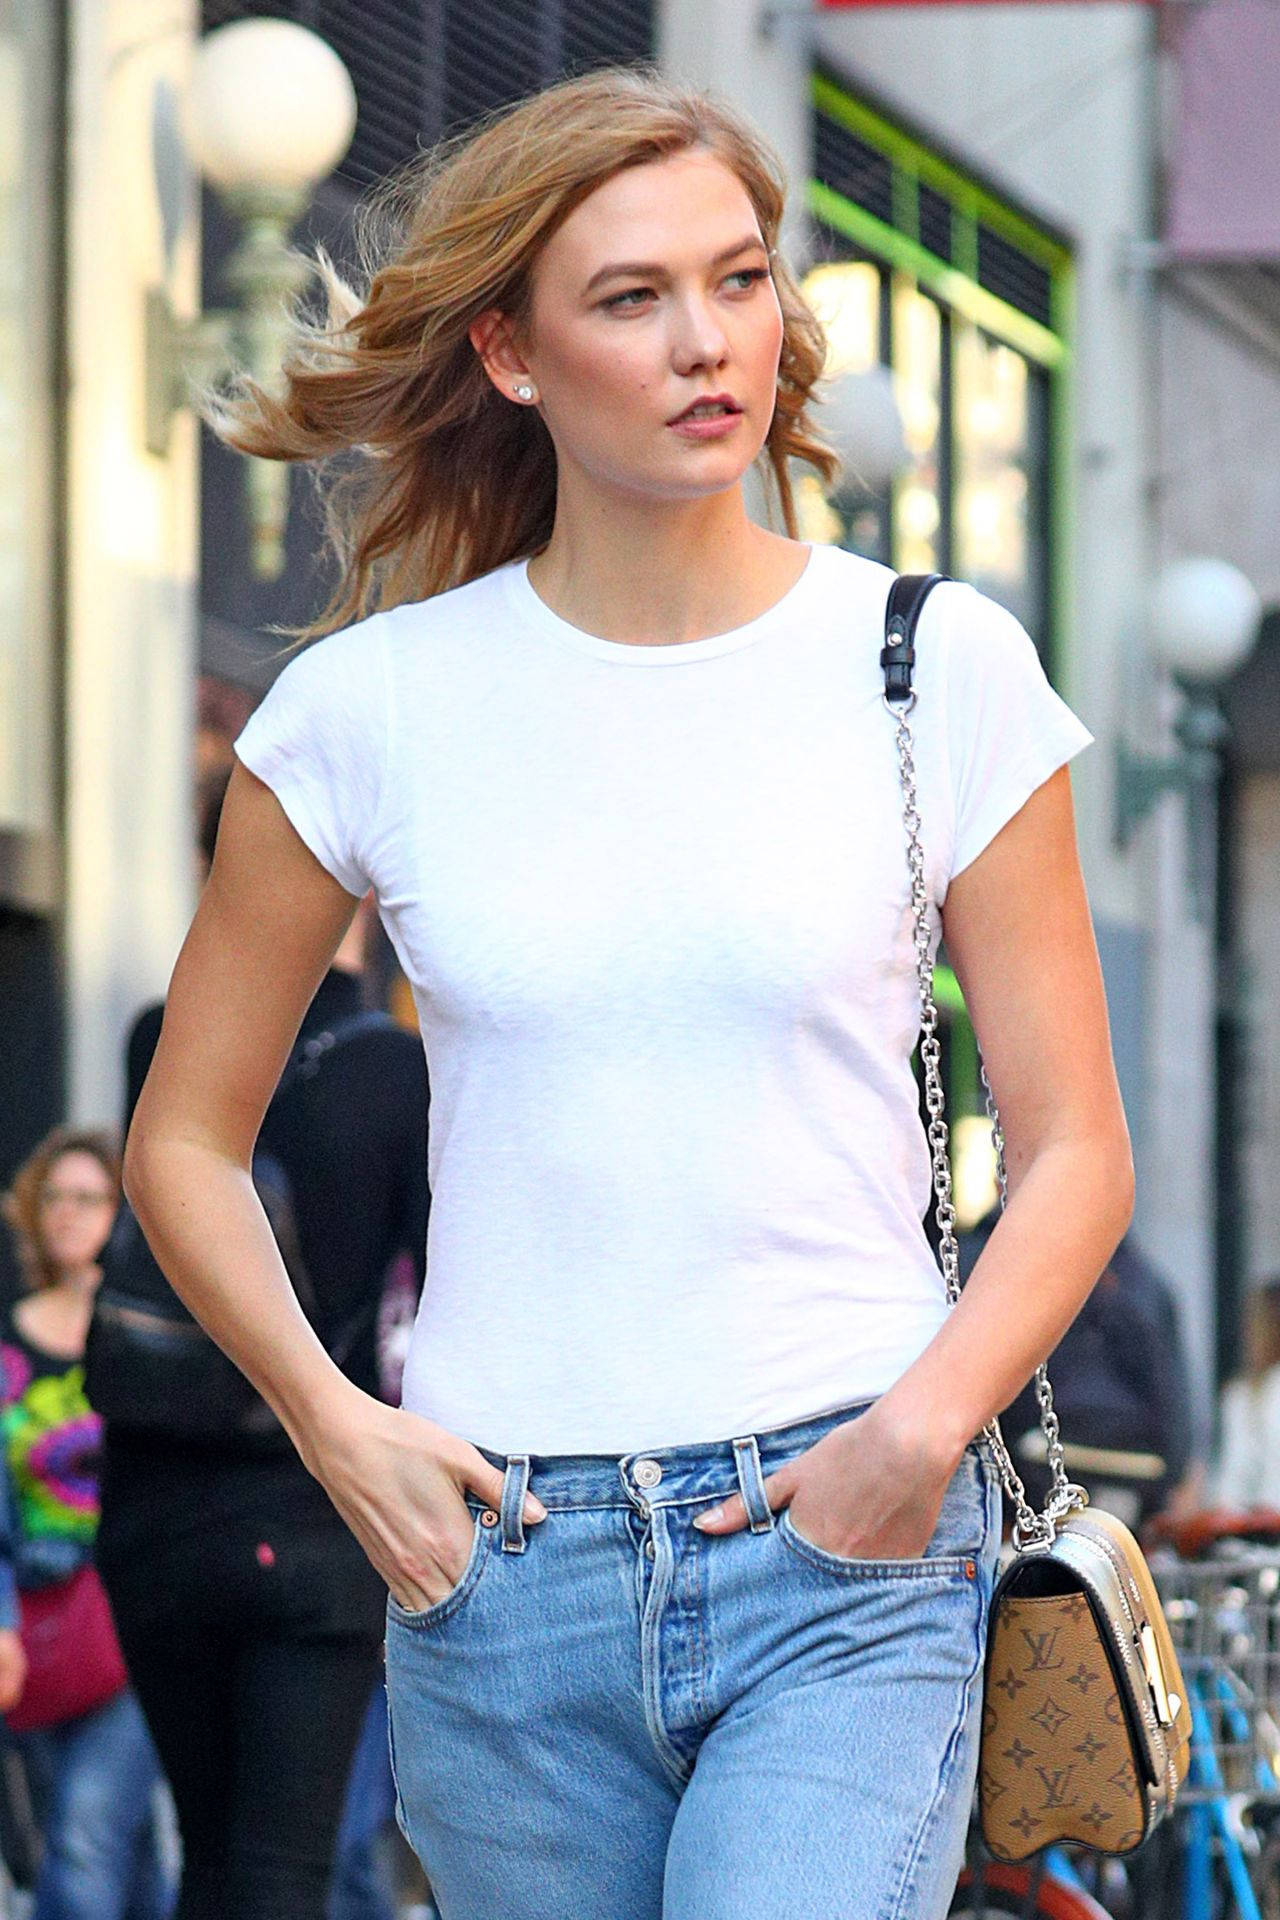 Karlie Kloss In Boyfriend Jeans And Tan Hiking Boots 4 12 2017